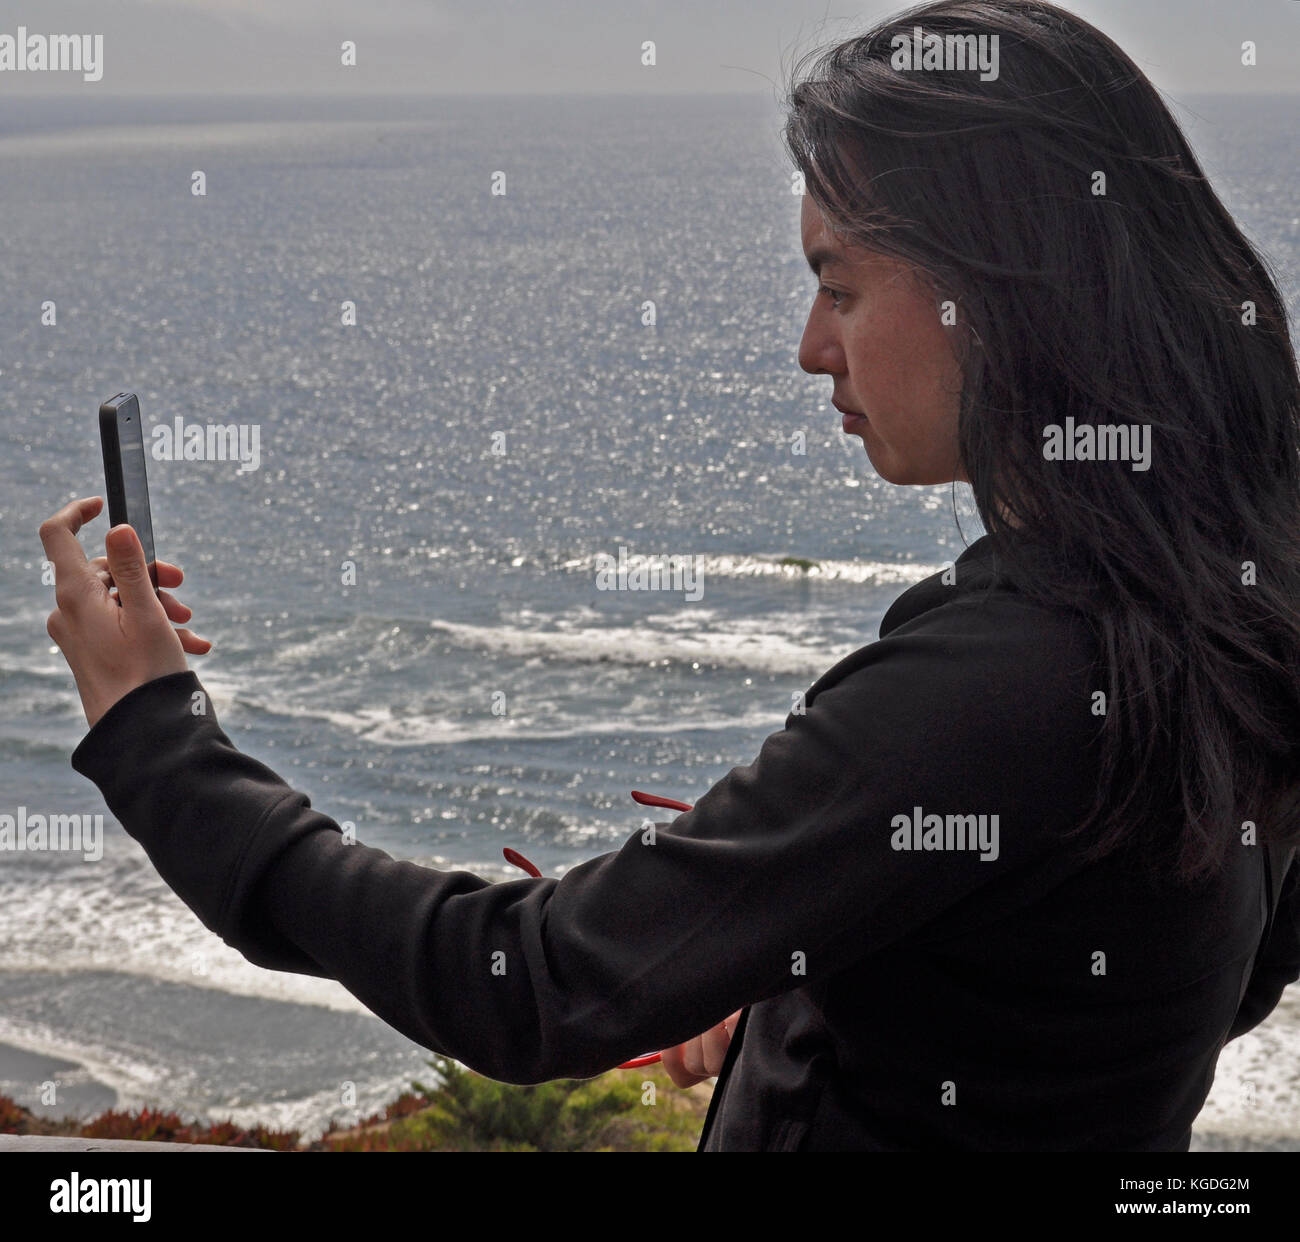 artist Michelle Wong Clay, takes photographs with an I phone, Pacifica,  California - Stock Image